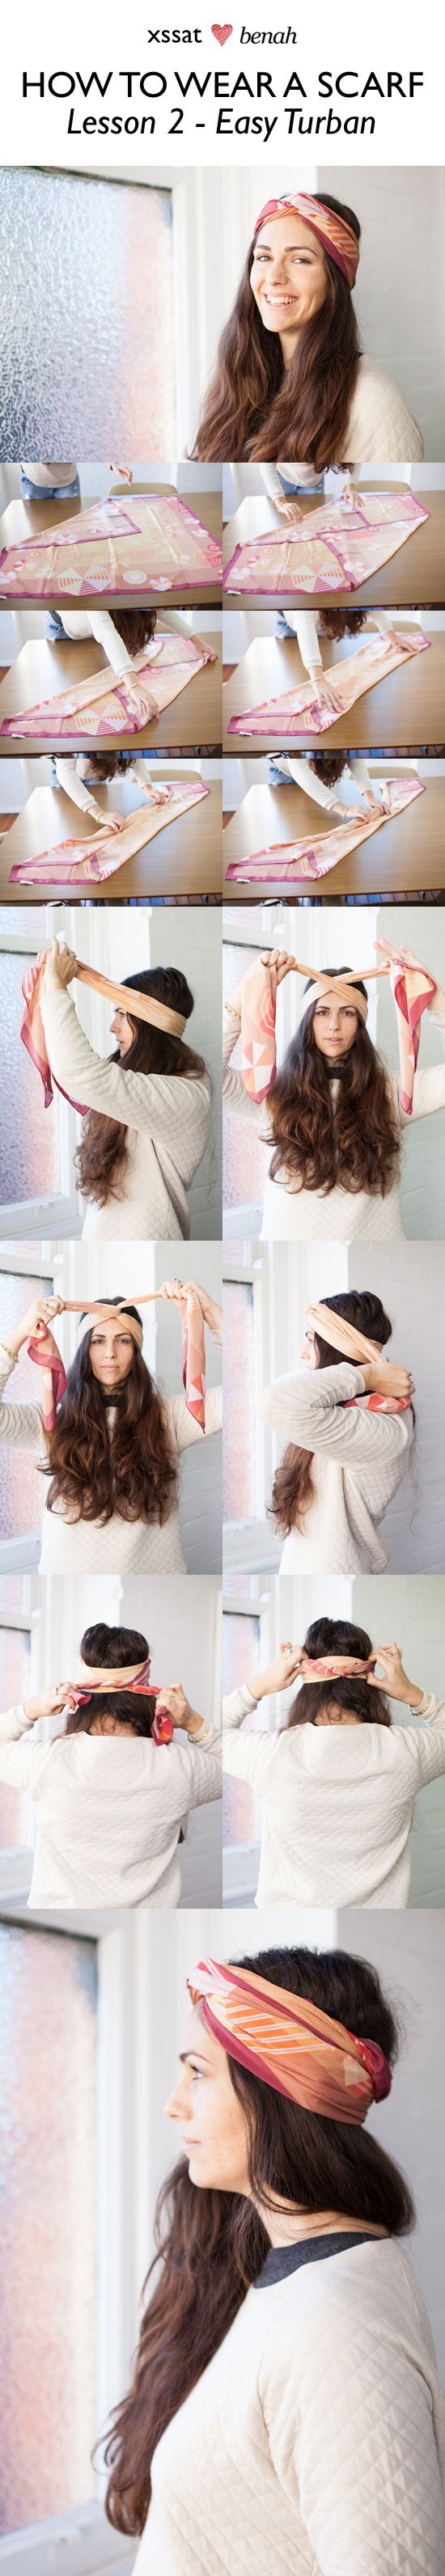 Learn how to tie your scarf into a cute turban style . PERFECT FOR THE BEACH!